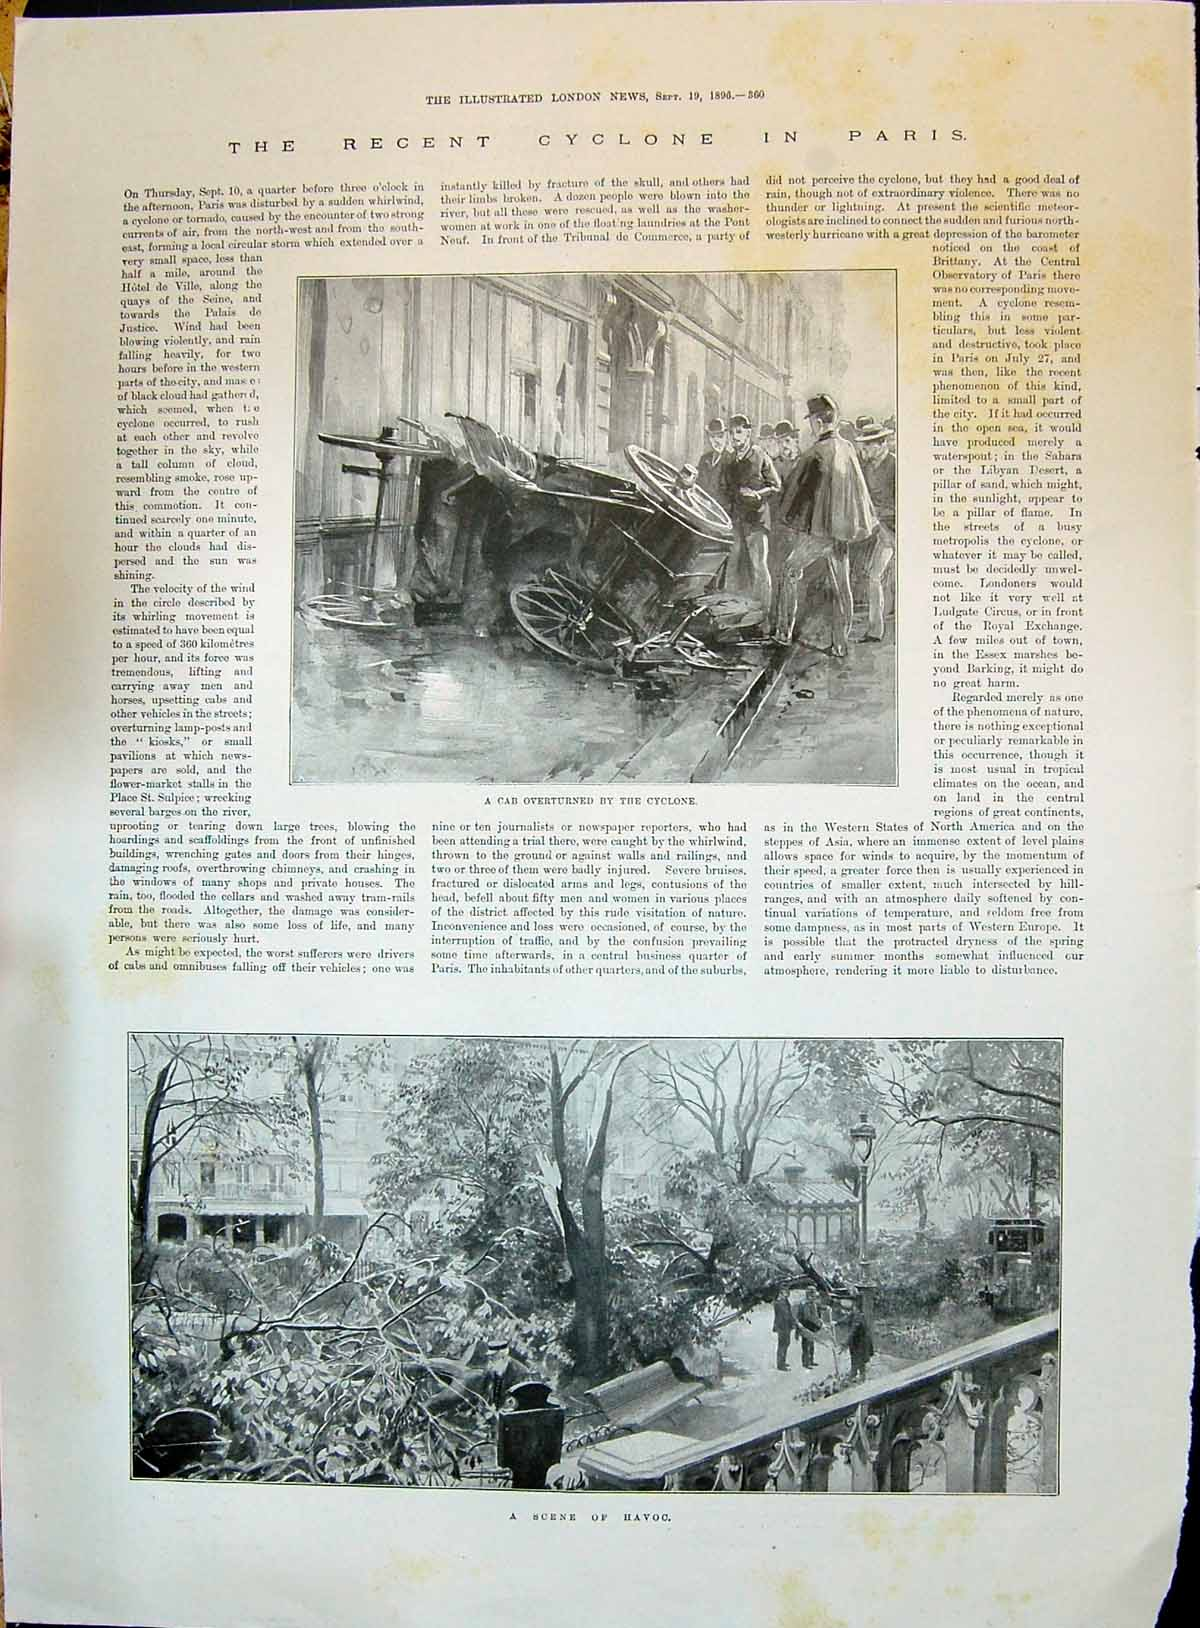 Old-Antique-Print-1896-Cyclone-Paris-France-Car-Overturned-Stormy-Weather-19th